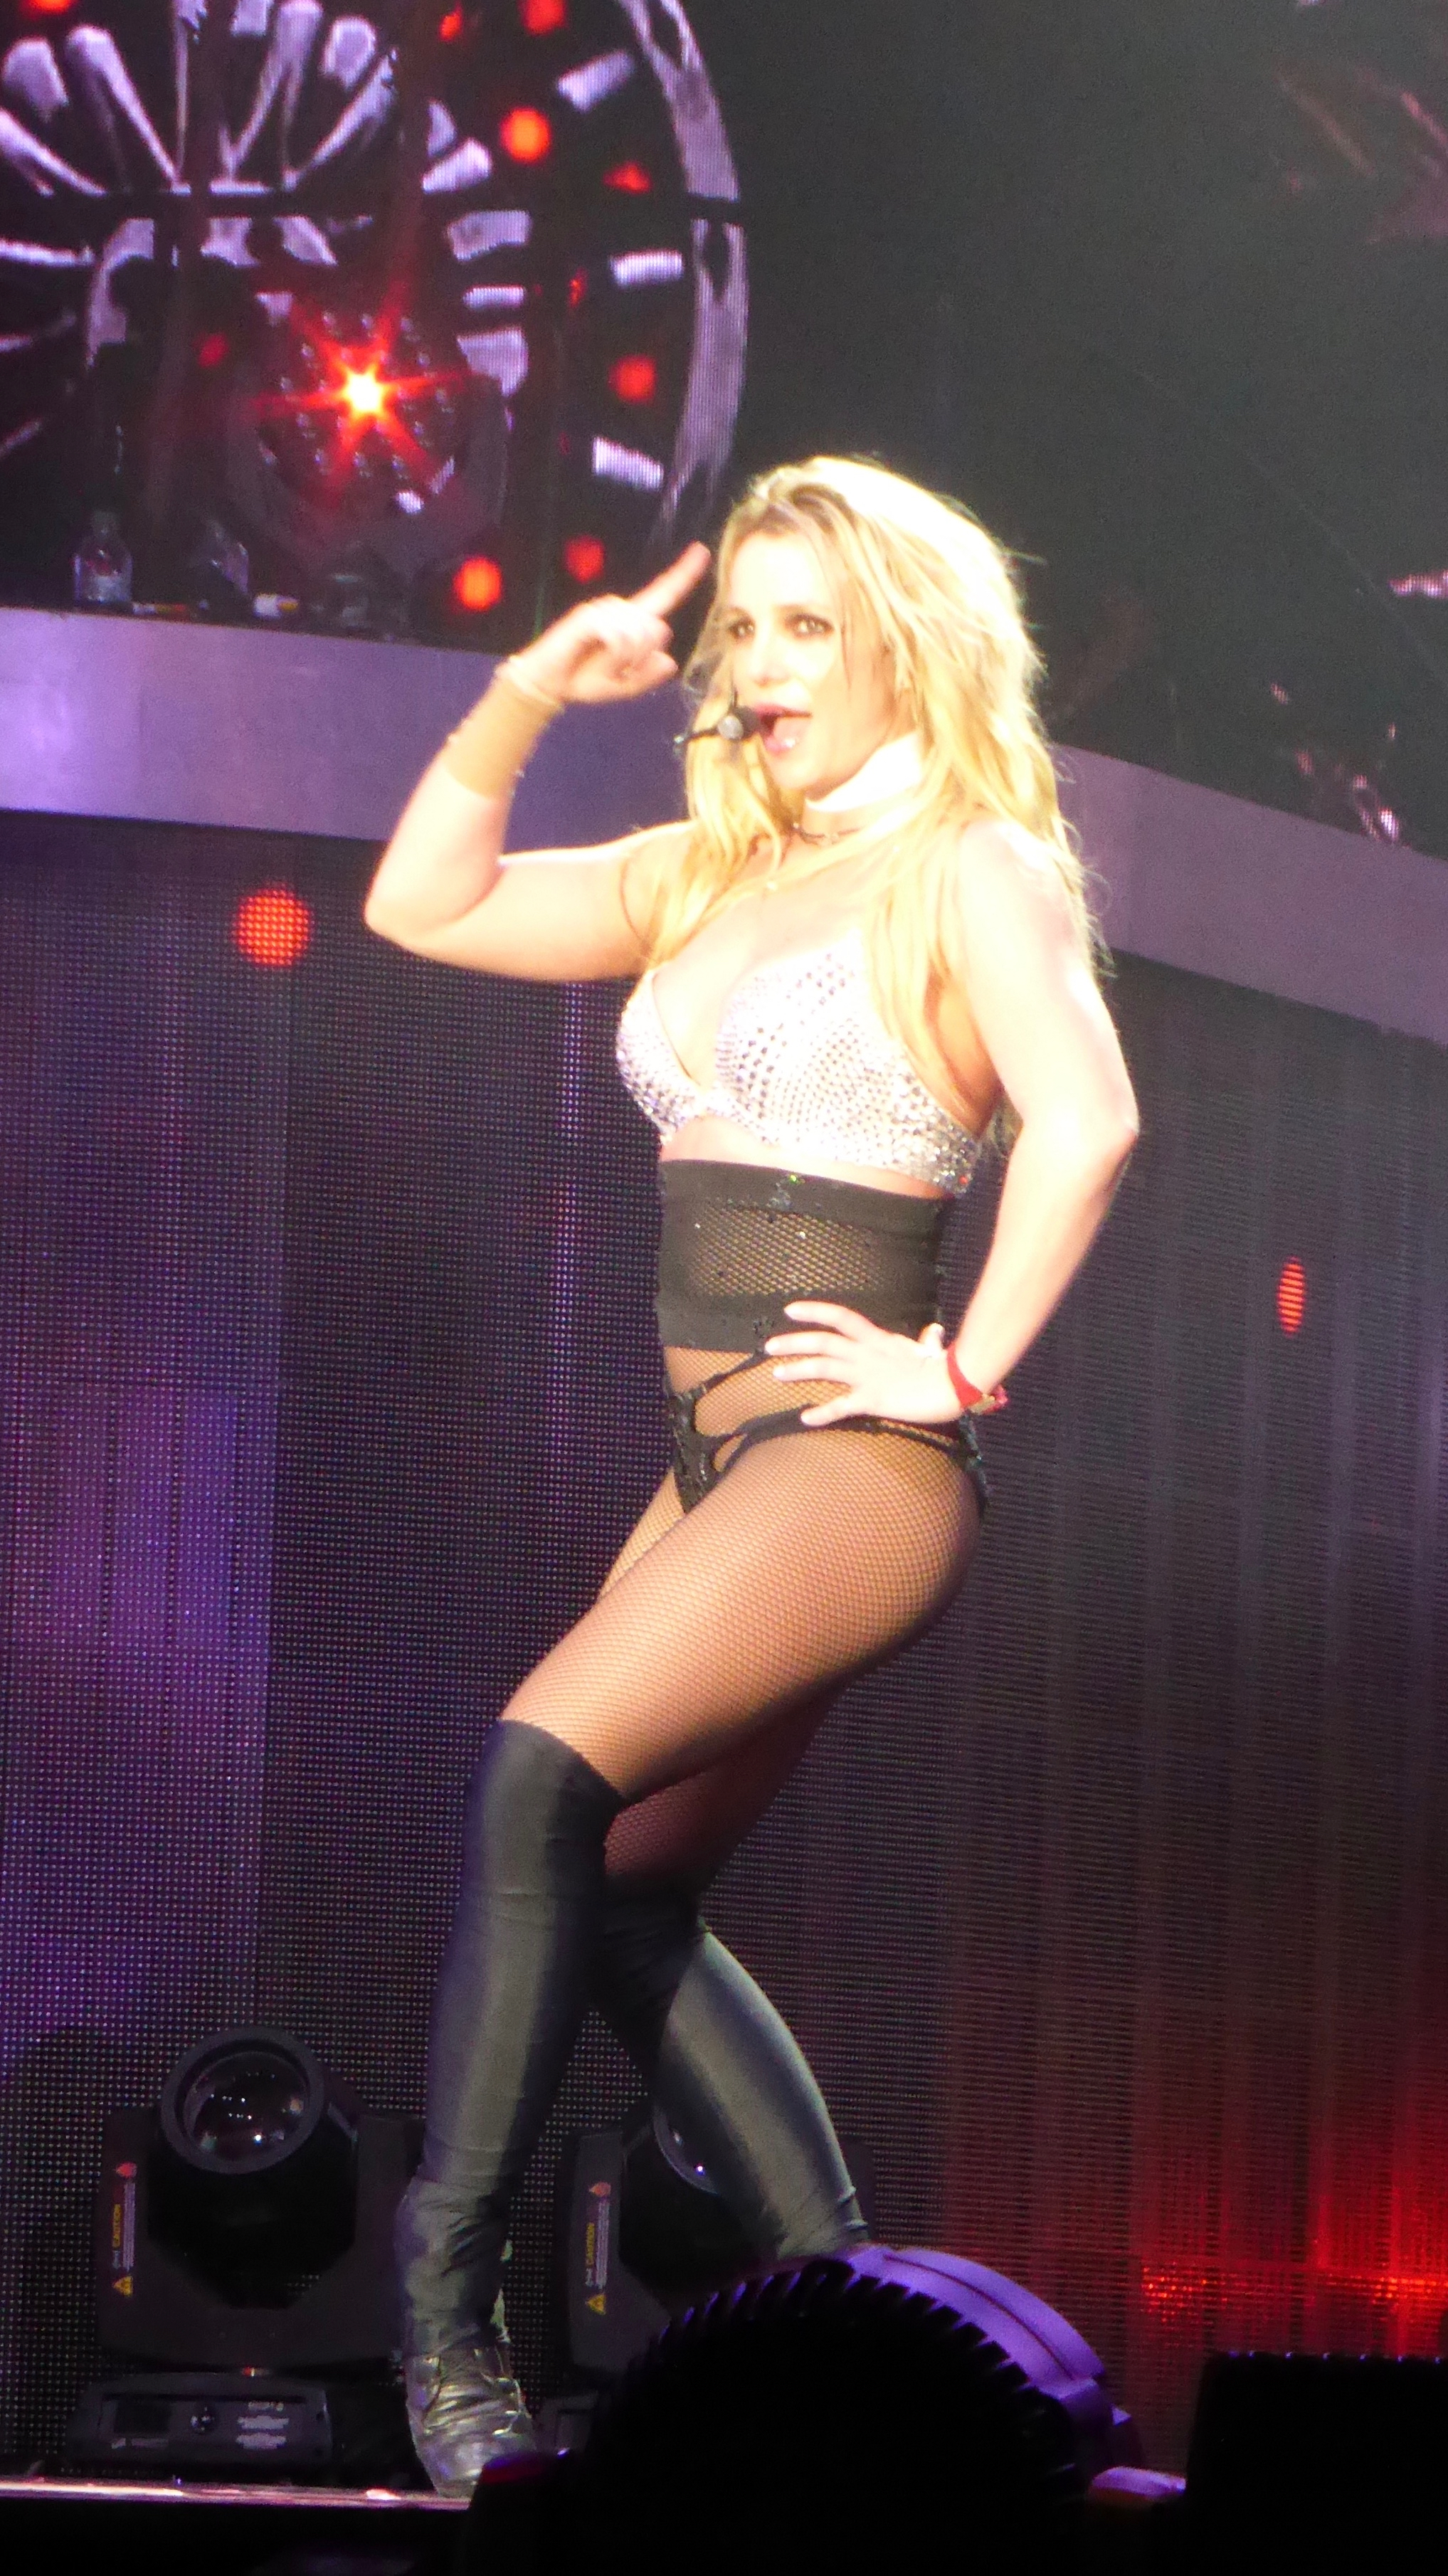 Britney Spears piece of me tour BlackpoolFeaturing: Britney Spears, BlackpoolWhere: Blackpool, United KingdomWhen: 01 Sep 2018Credit: WENN.com